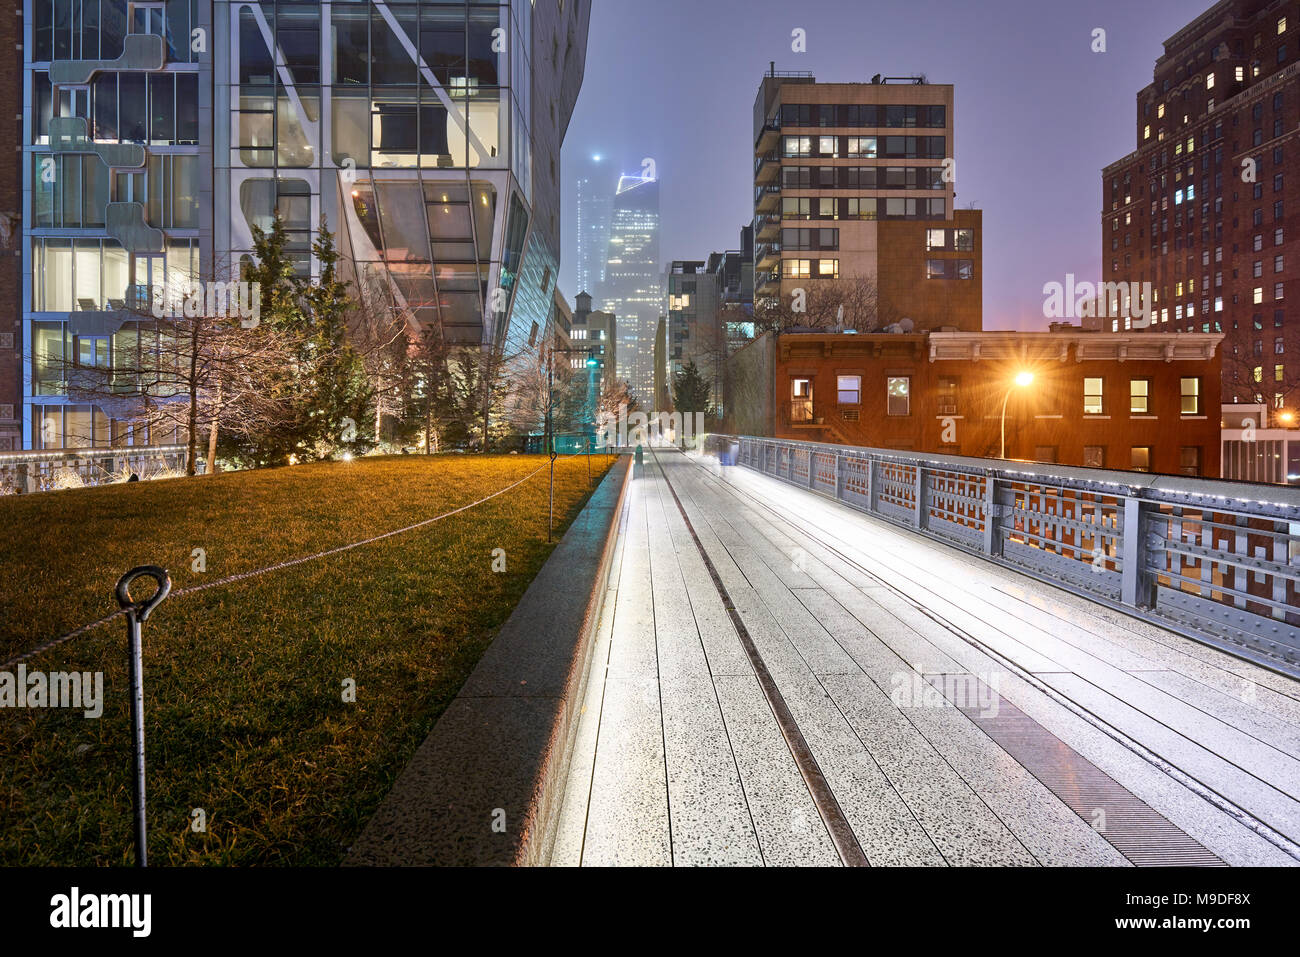 The Highline in Chelsea at night on a rainy day in winter. Manhattan, New York City - Stock Image